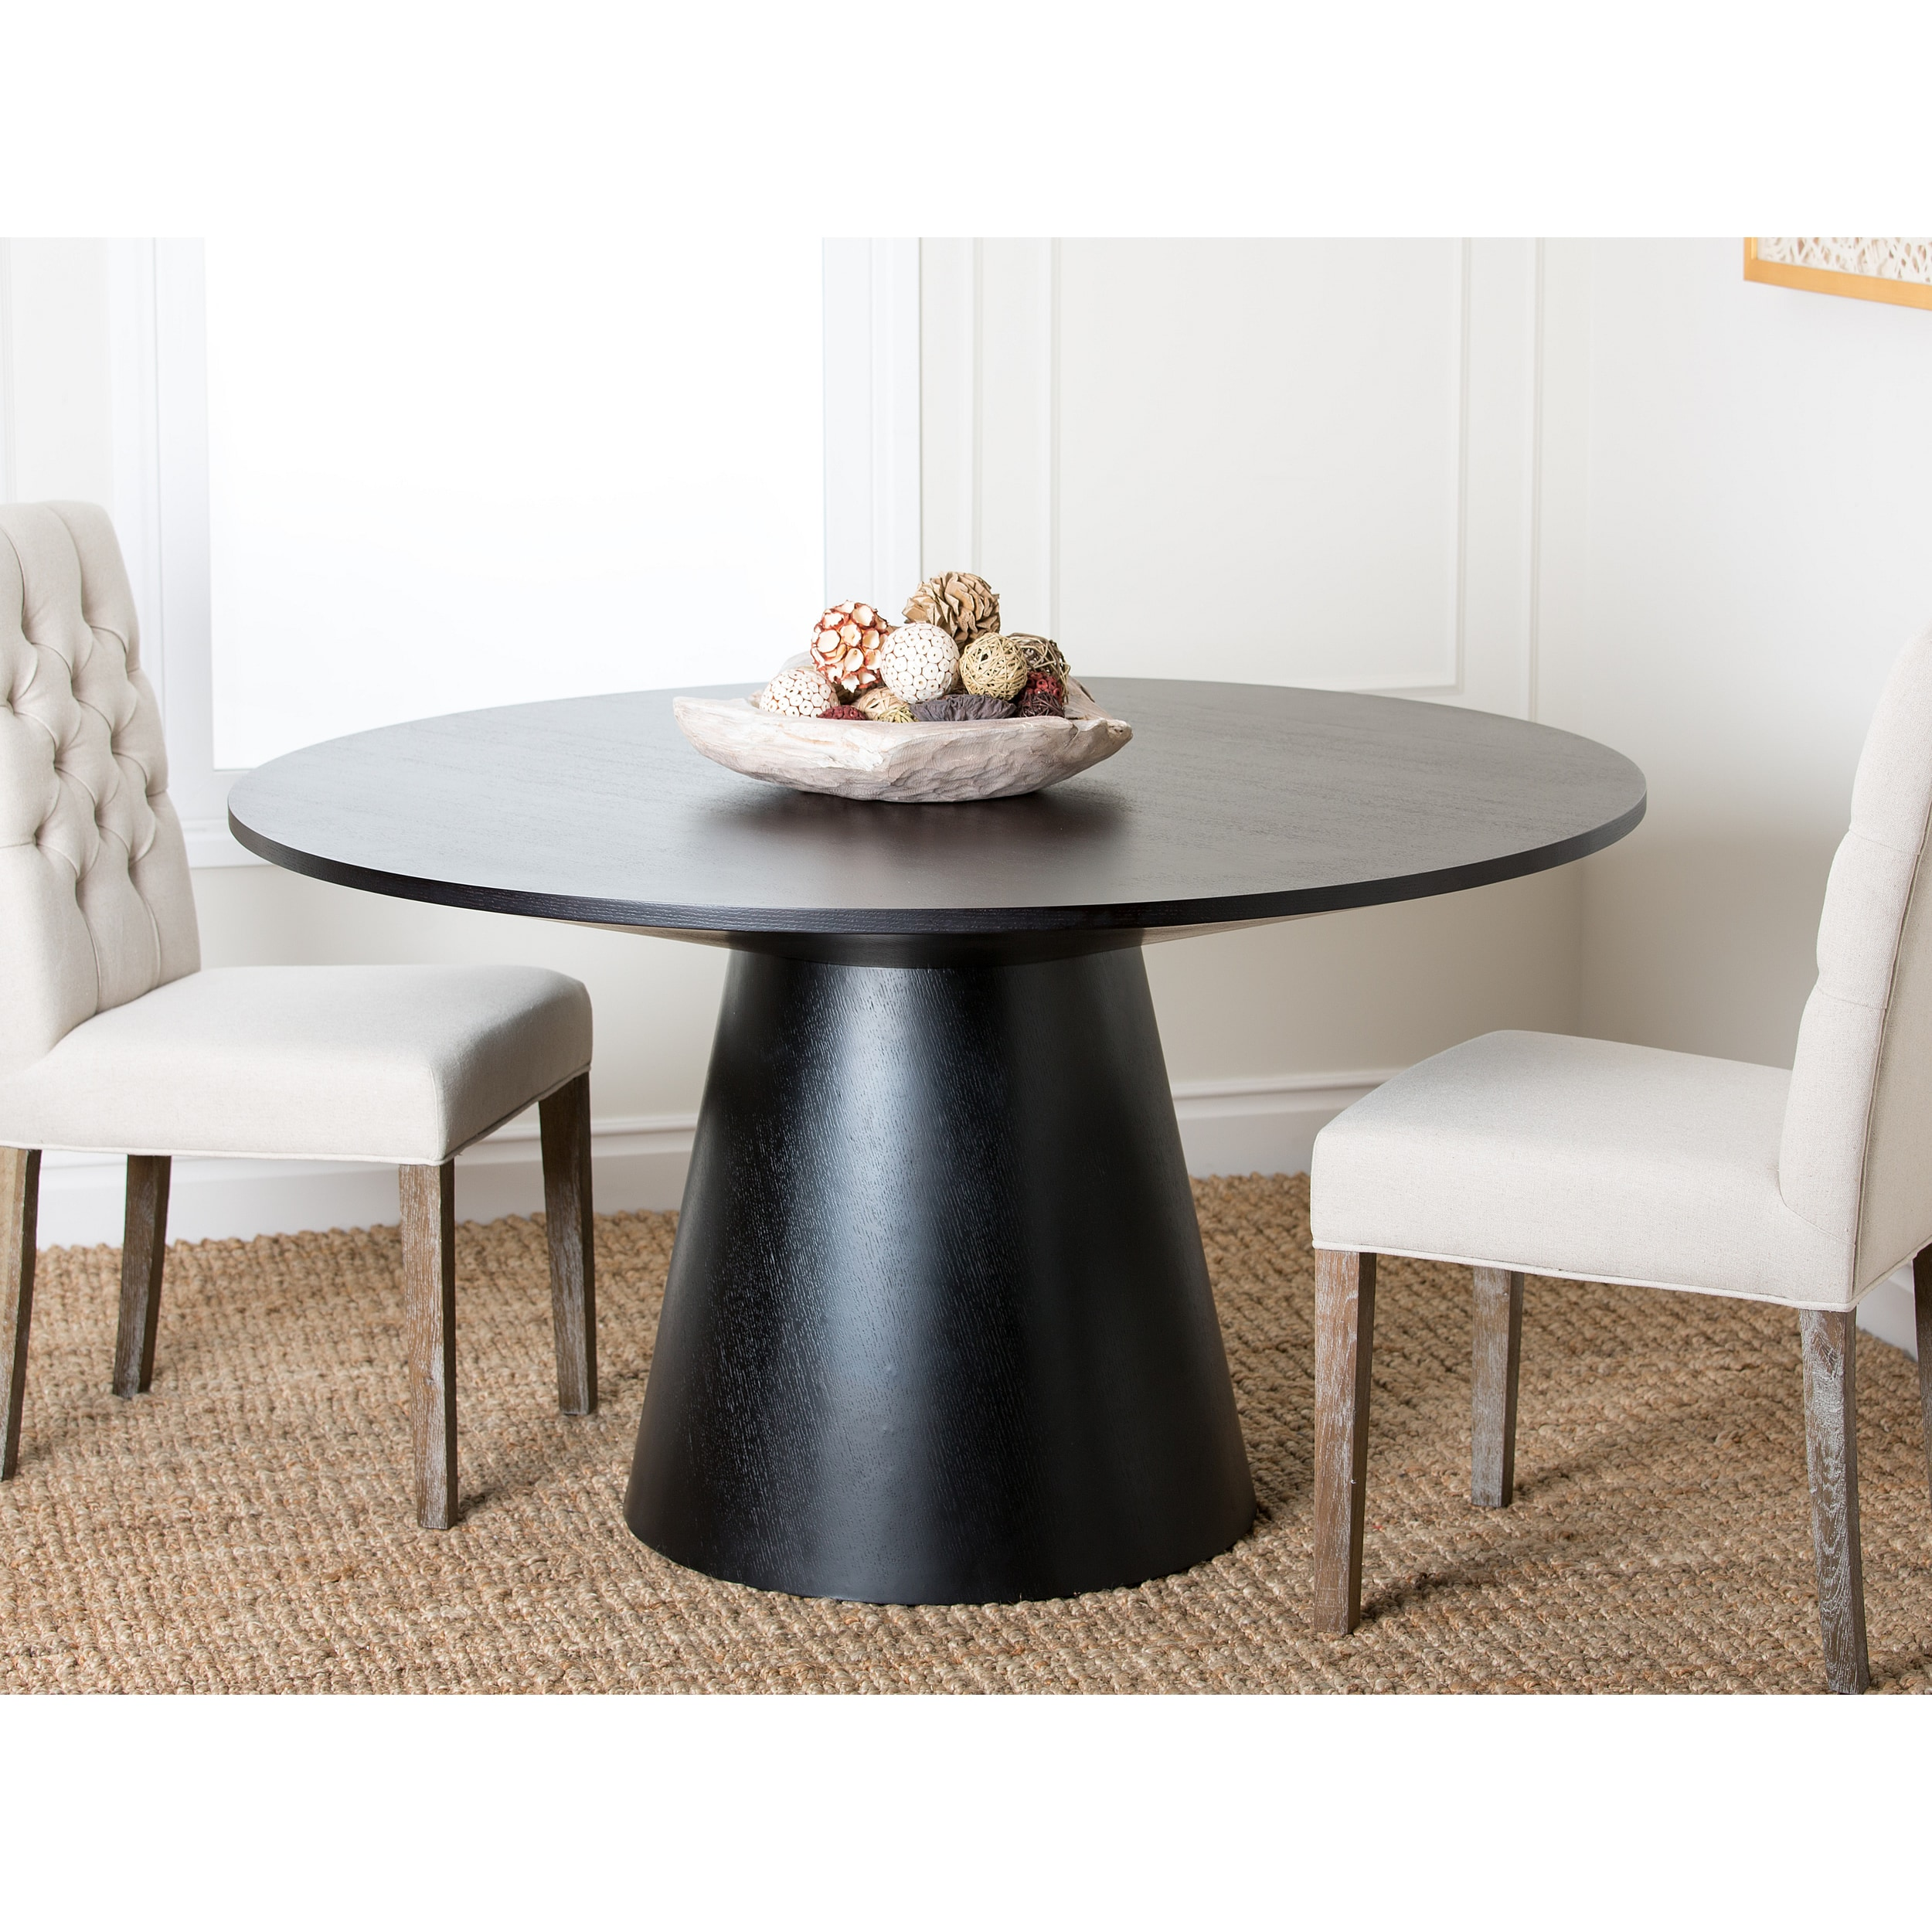 Abbyson Living Sienna Round Wood Dining Table Overstock